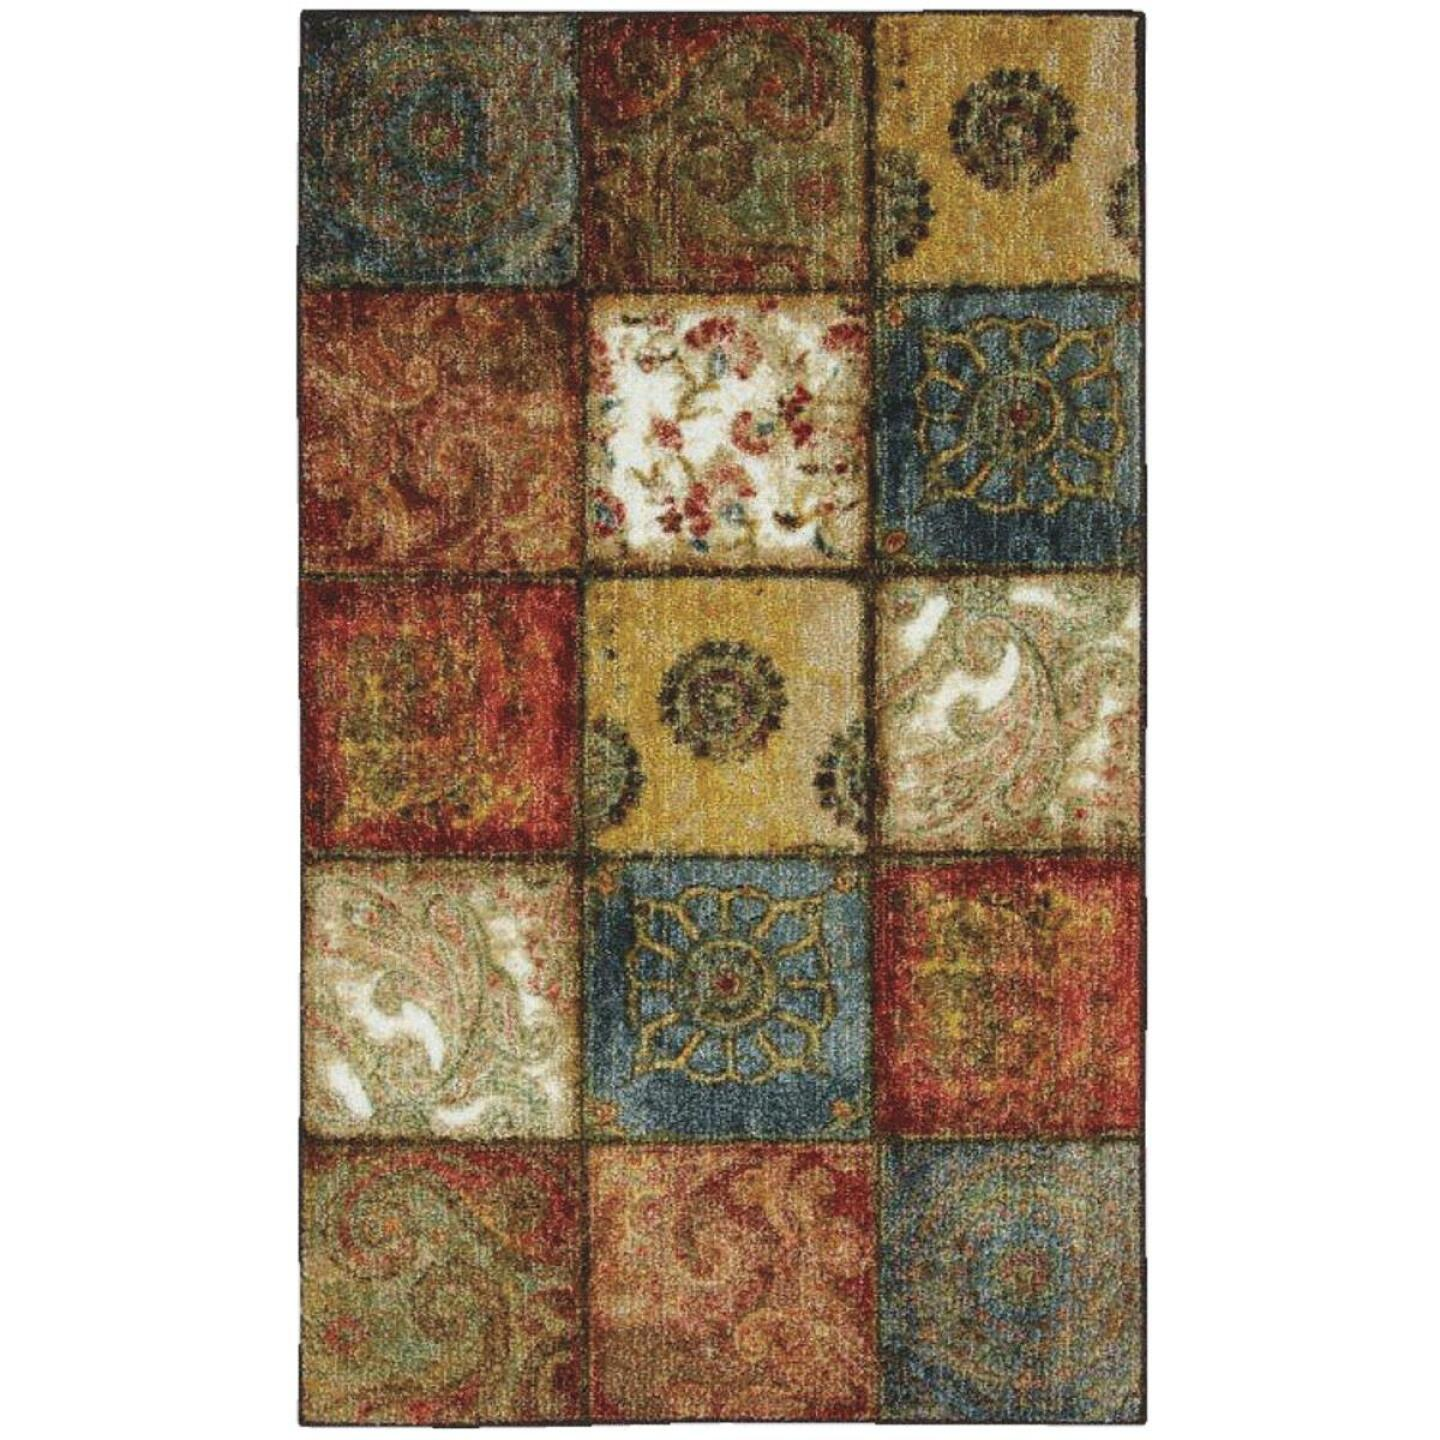 Mohawk Home Artifact Multi-Panel 1 Ft. 8 In. x 2 Ft. 10 In. Accent Rug Image 1